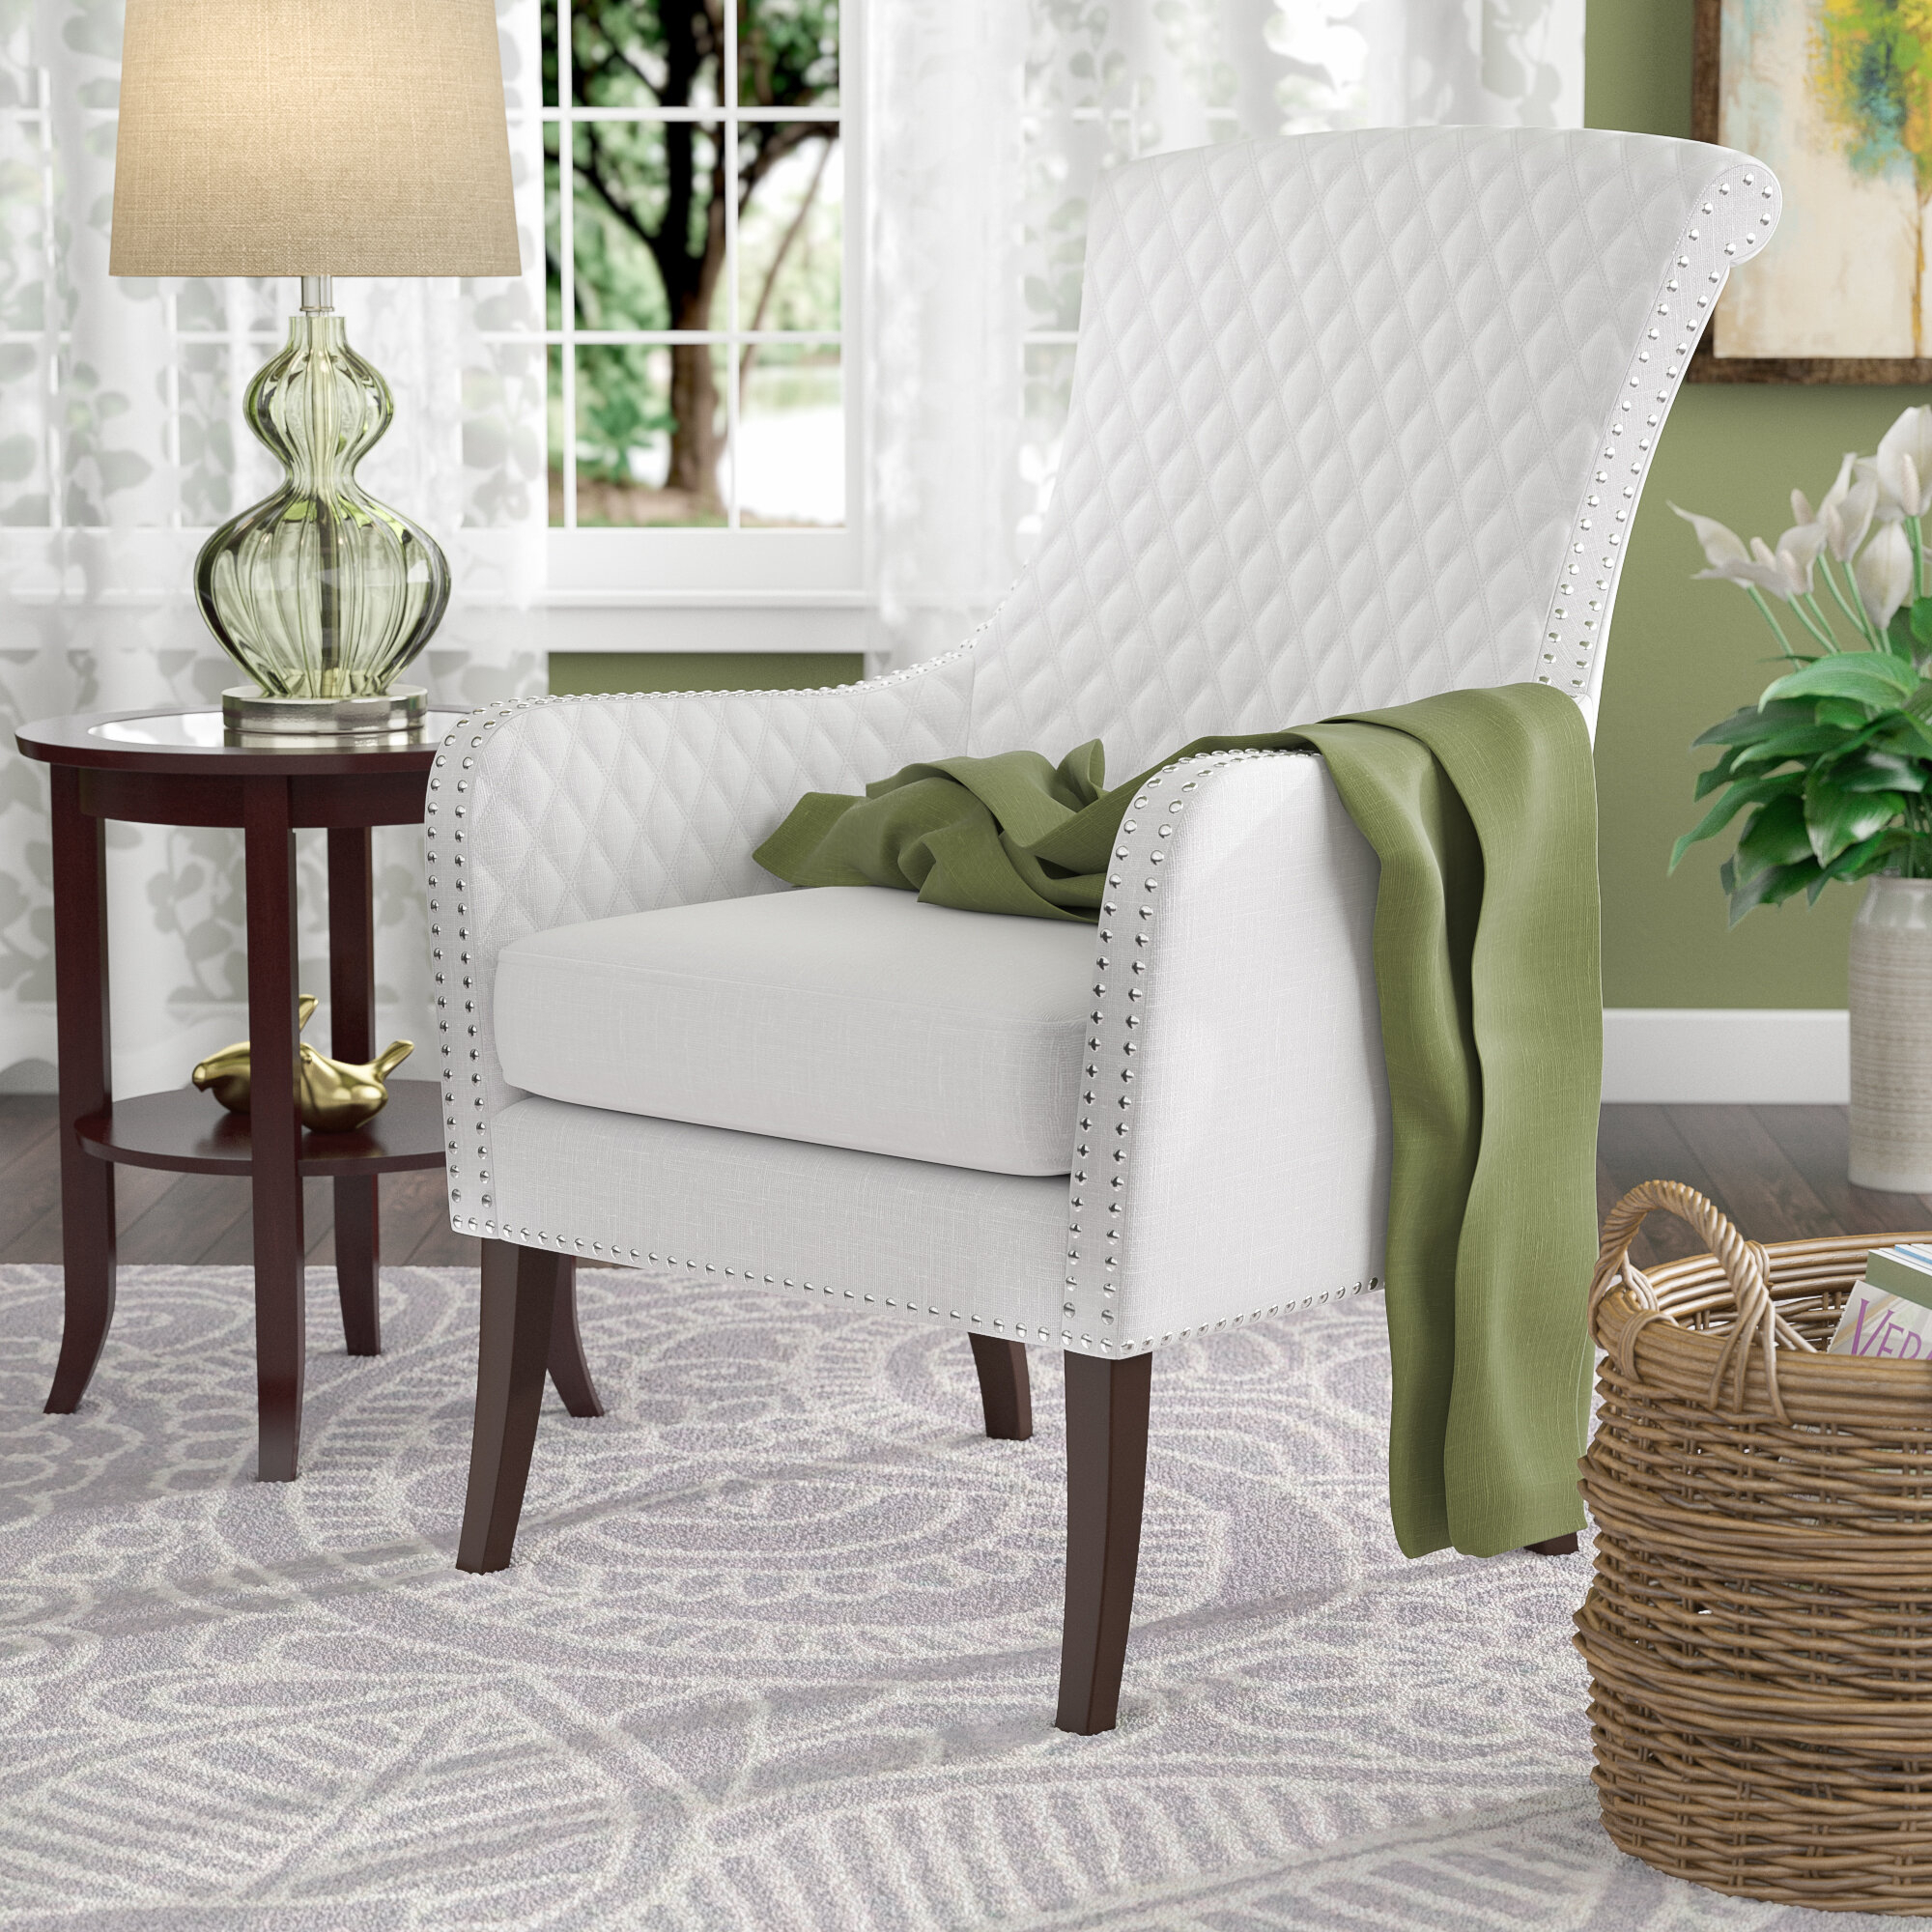 Busti Wingback Chair Pertaining To Busti Wingback Chairs (View 3 of 15)